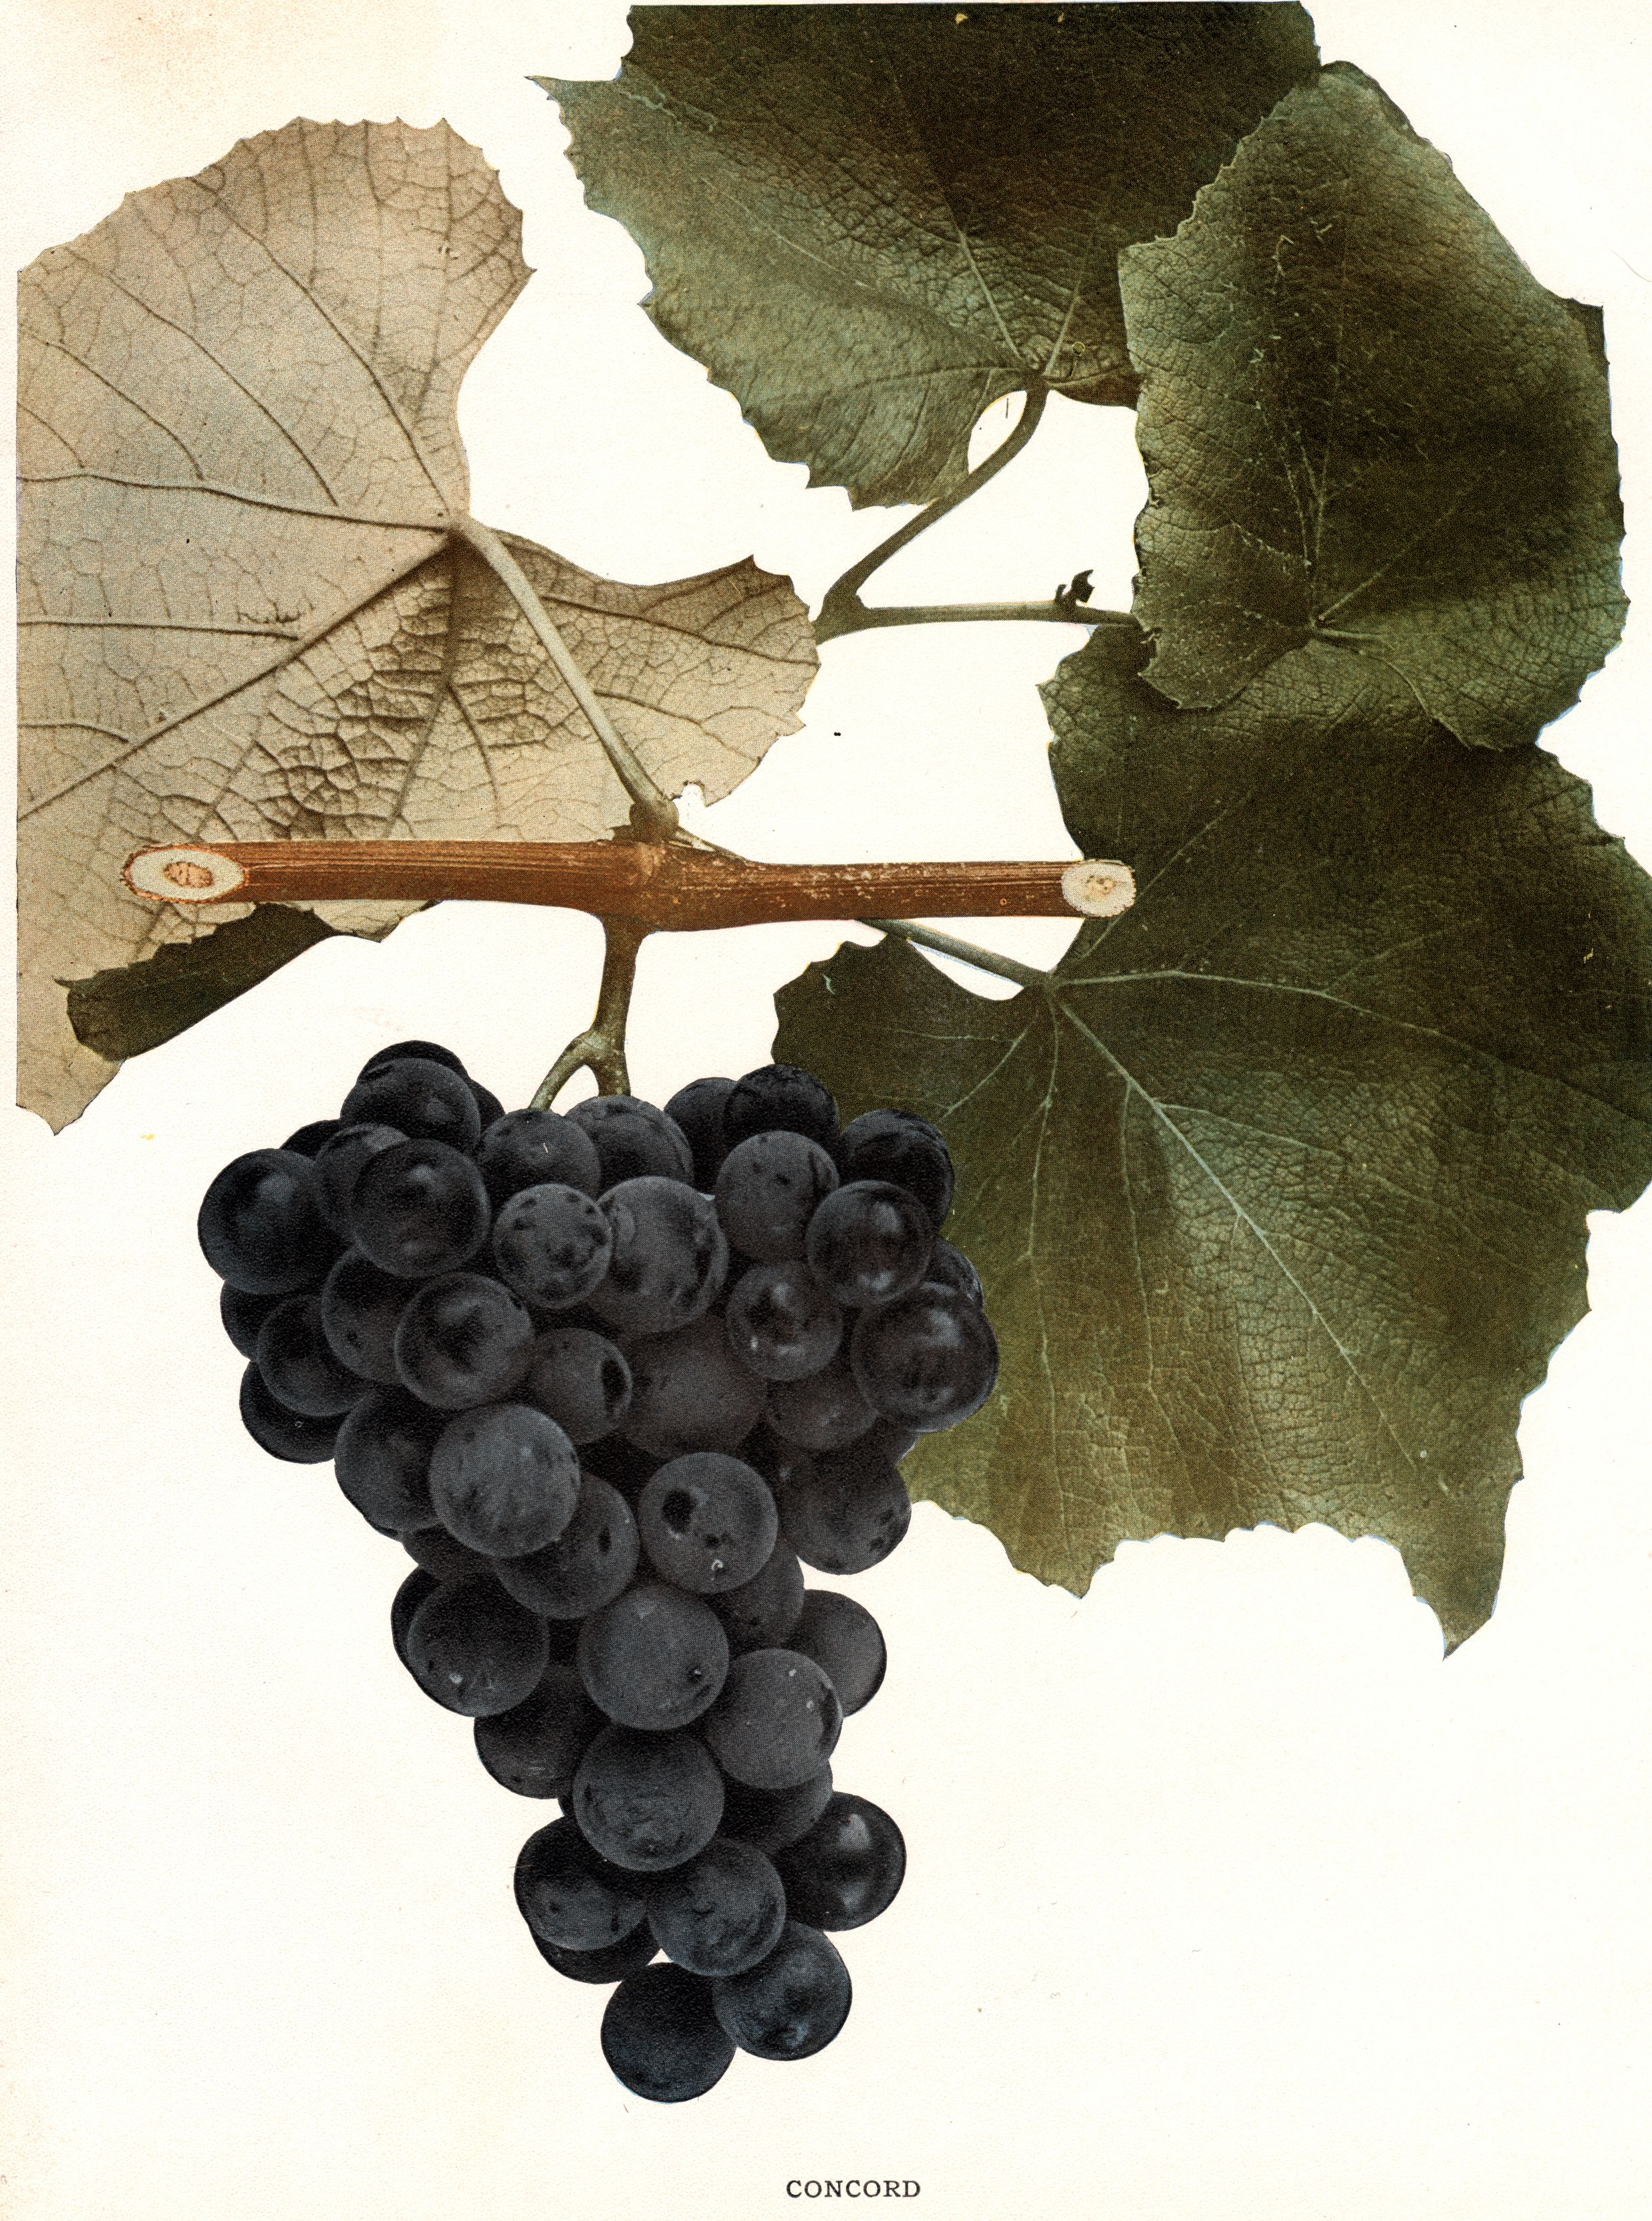 Soldier giving grapes photo